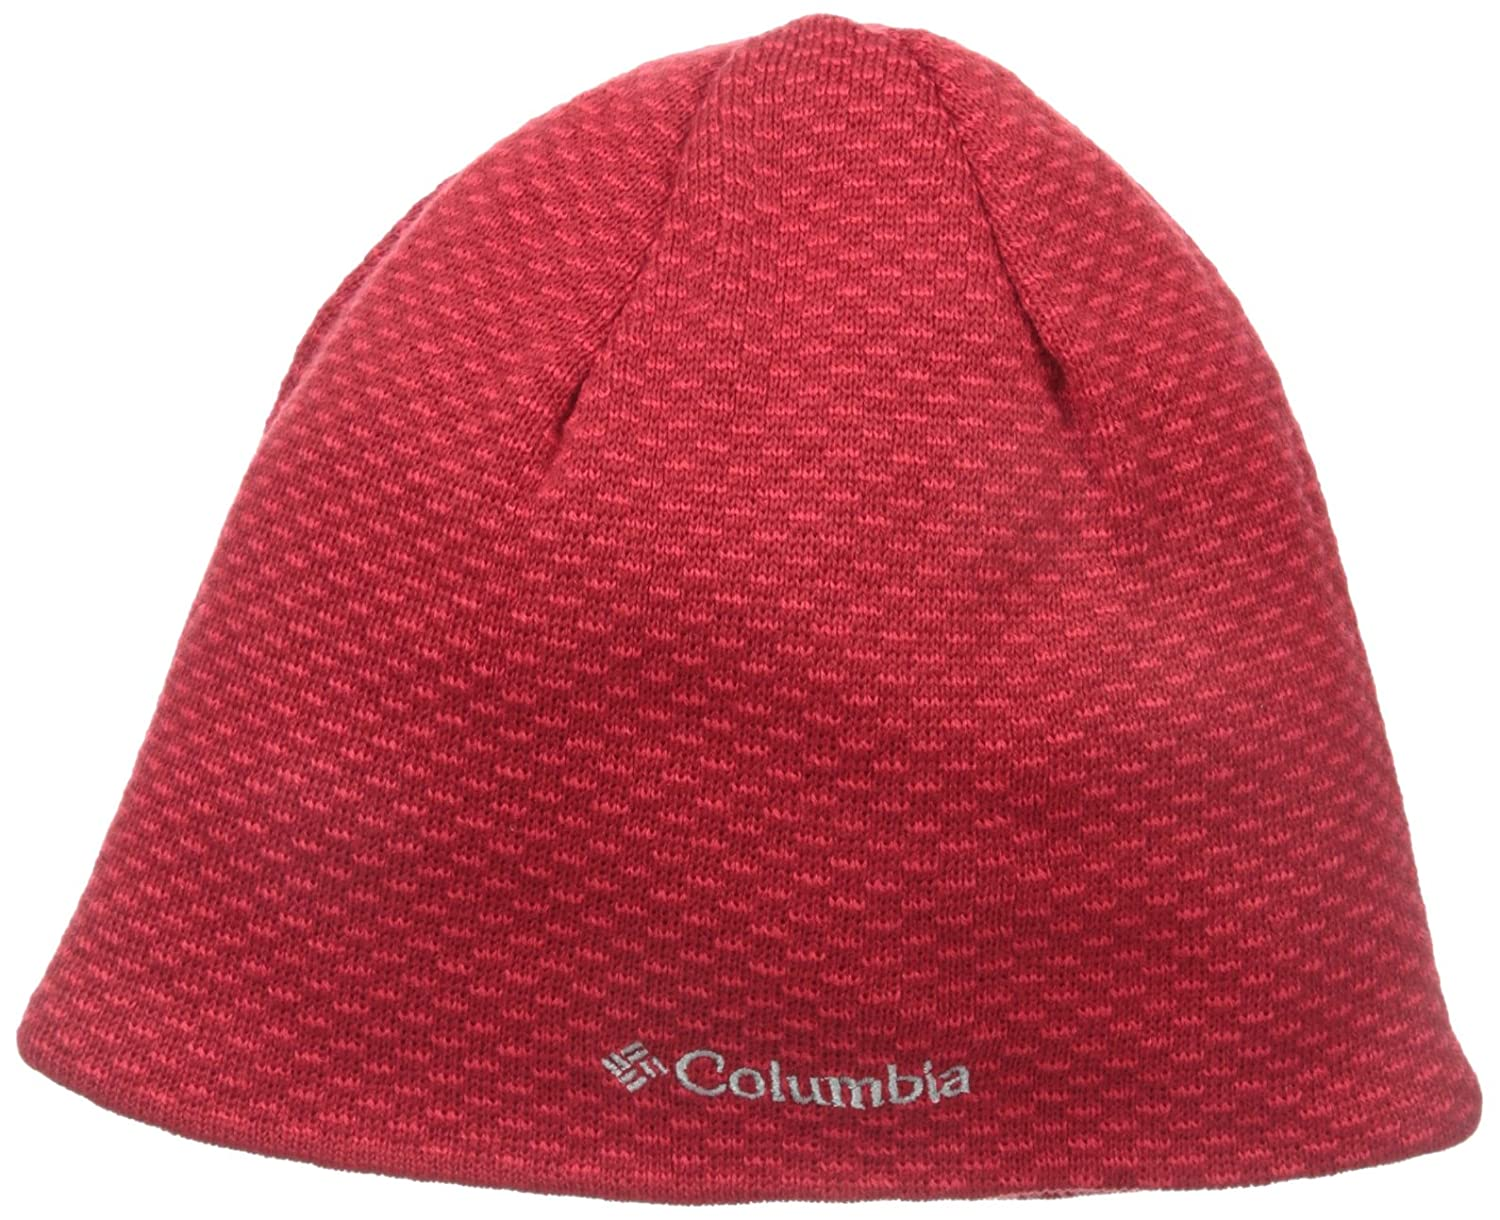 Columbia Mens Urbanization Mix Beanie Black/Shadow Logo One Size Columbia Men' s Sportswear 1482831016